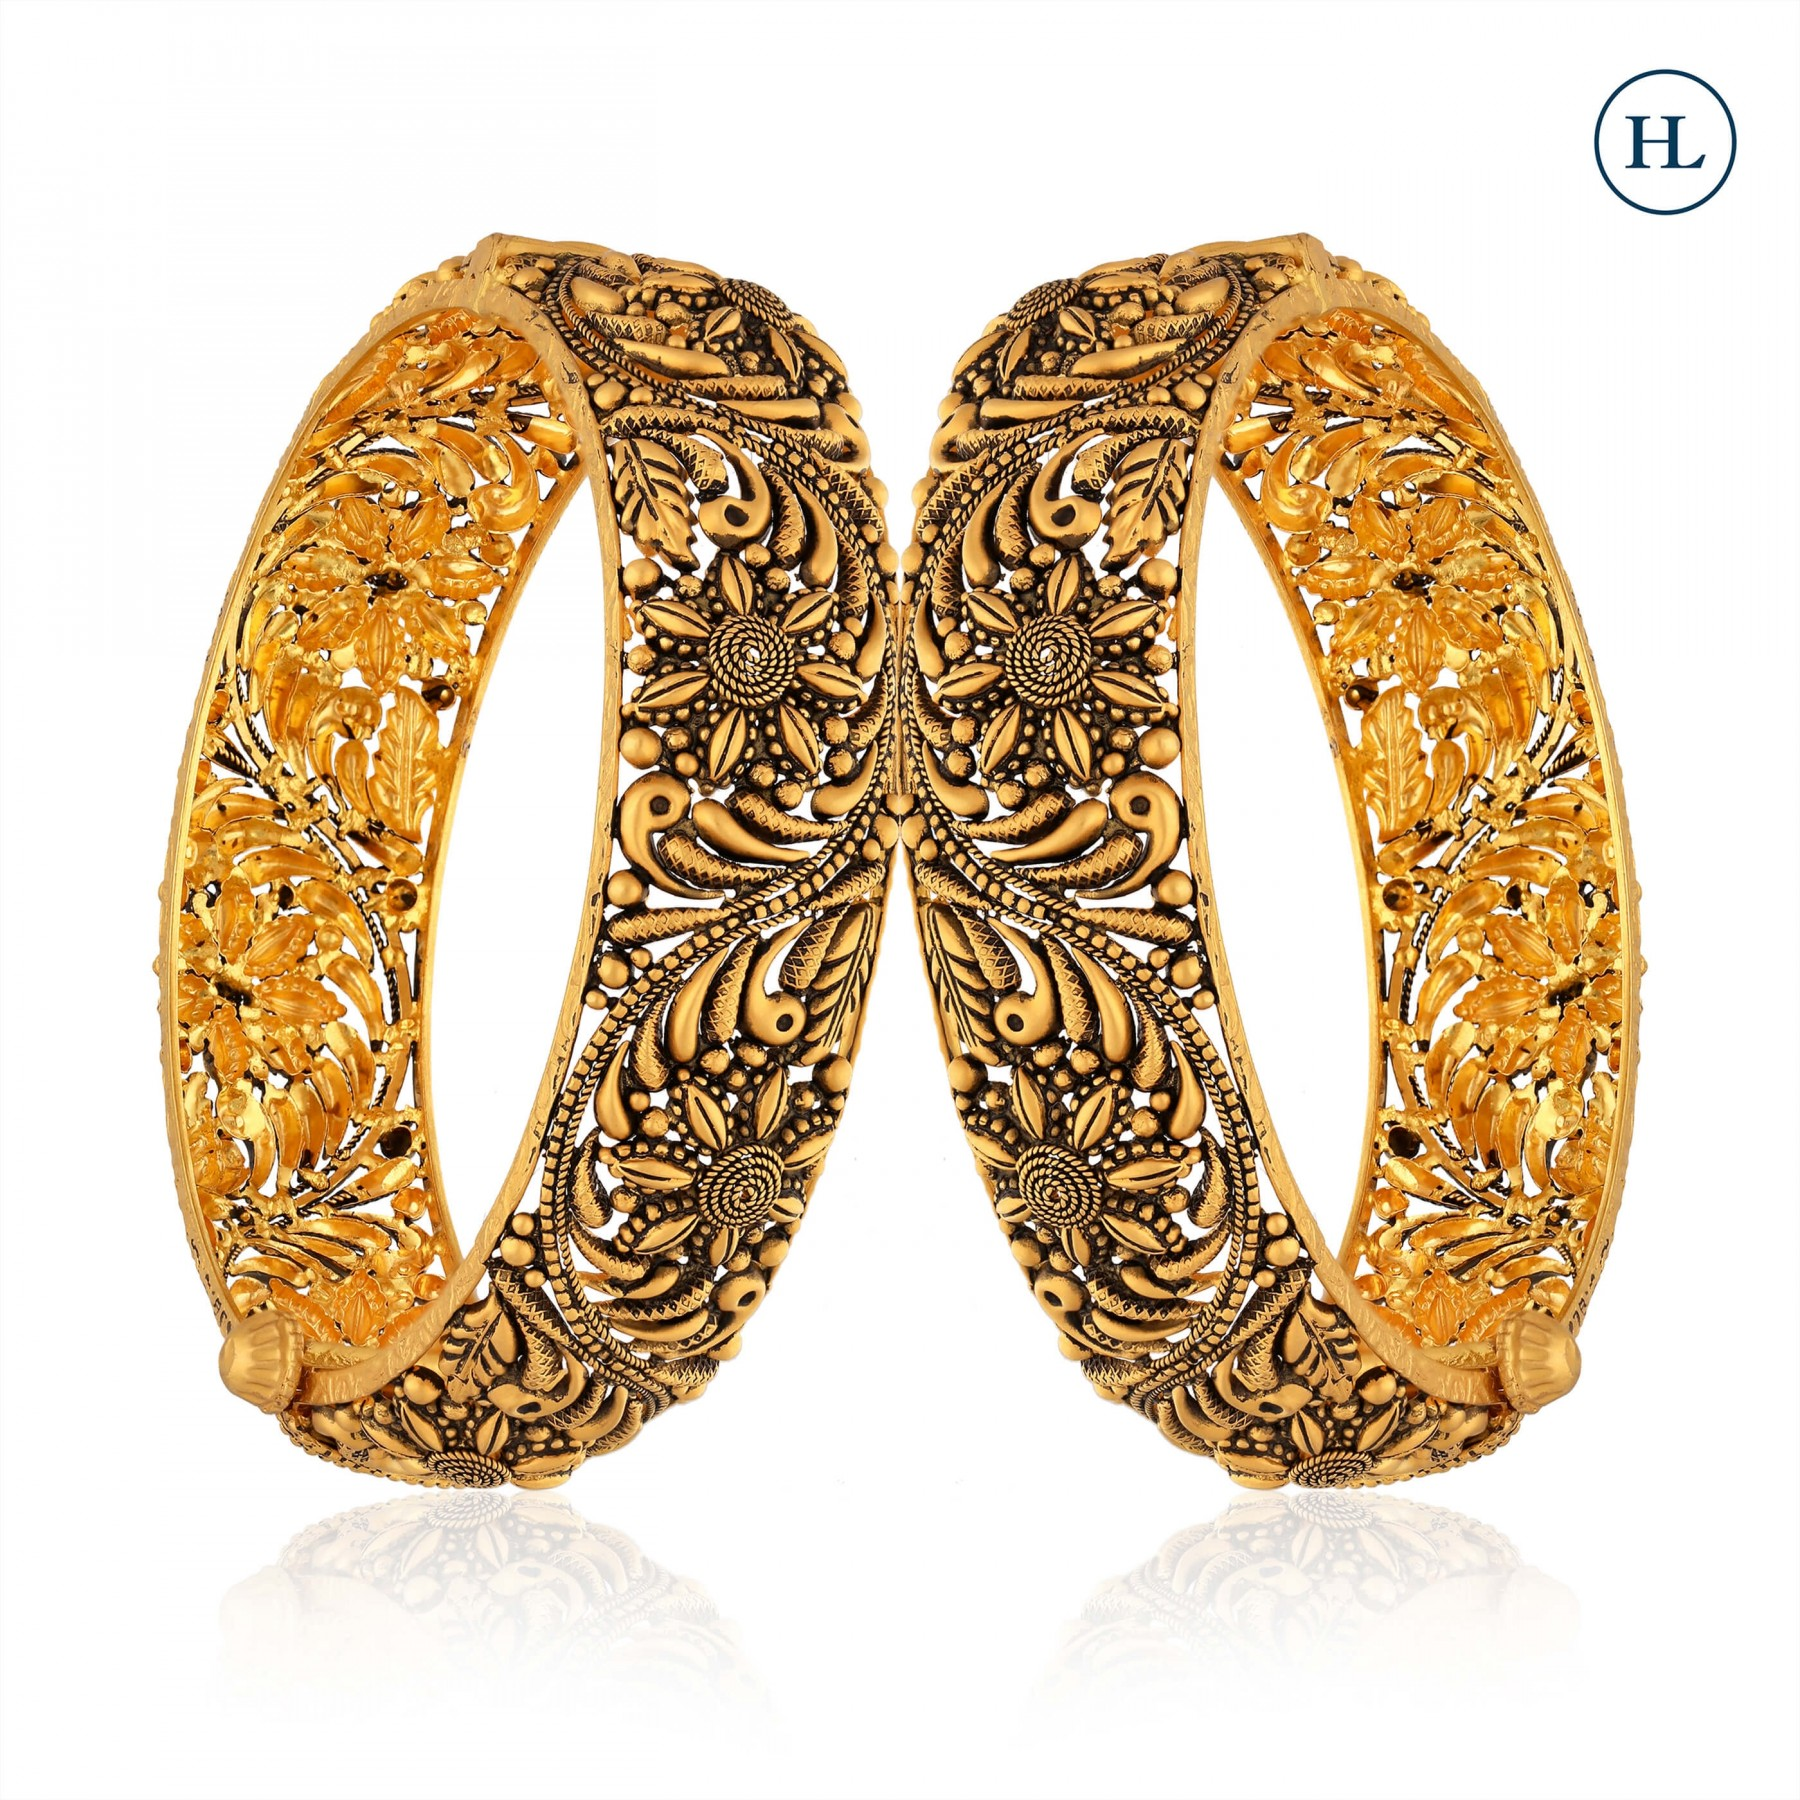 Antique-Styled Filigree Openable Gold Bangle Pair